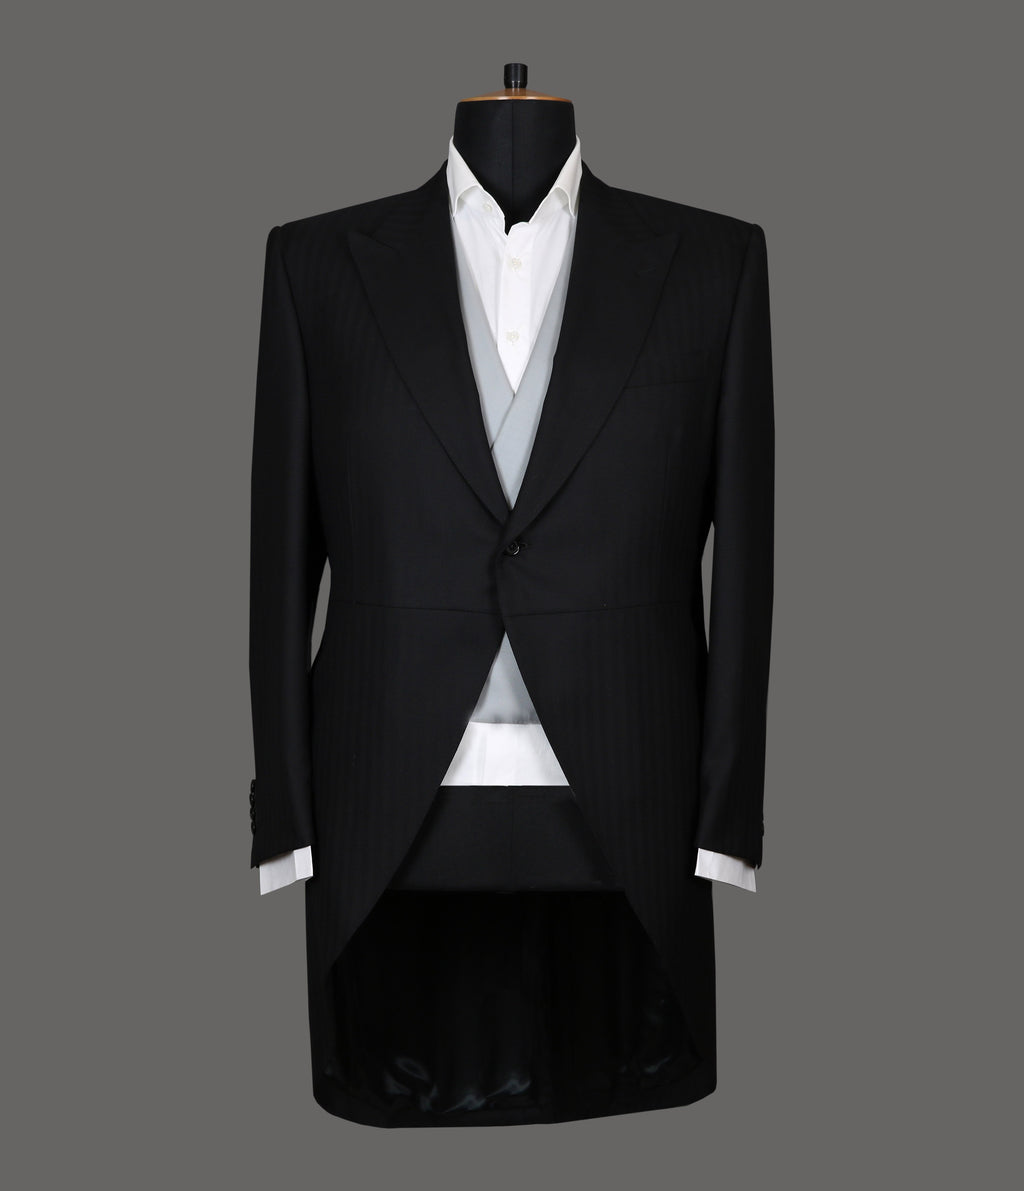 LUT104<br>Black Herringbone Morning Suit Coat<br>9364 / 3295